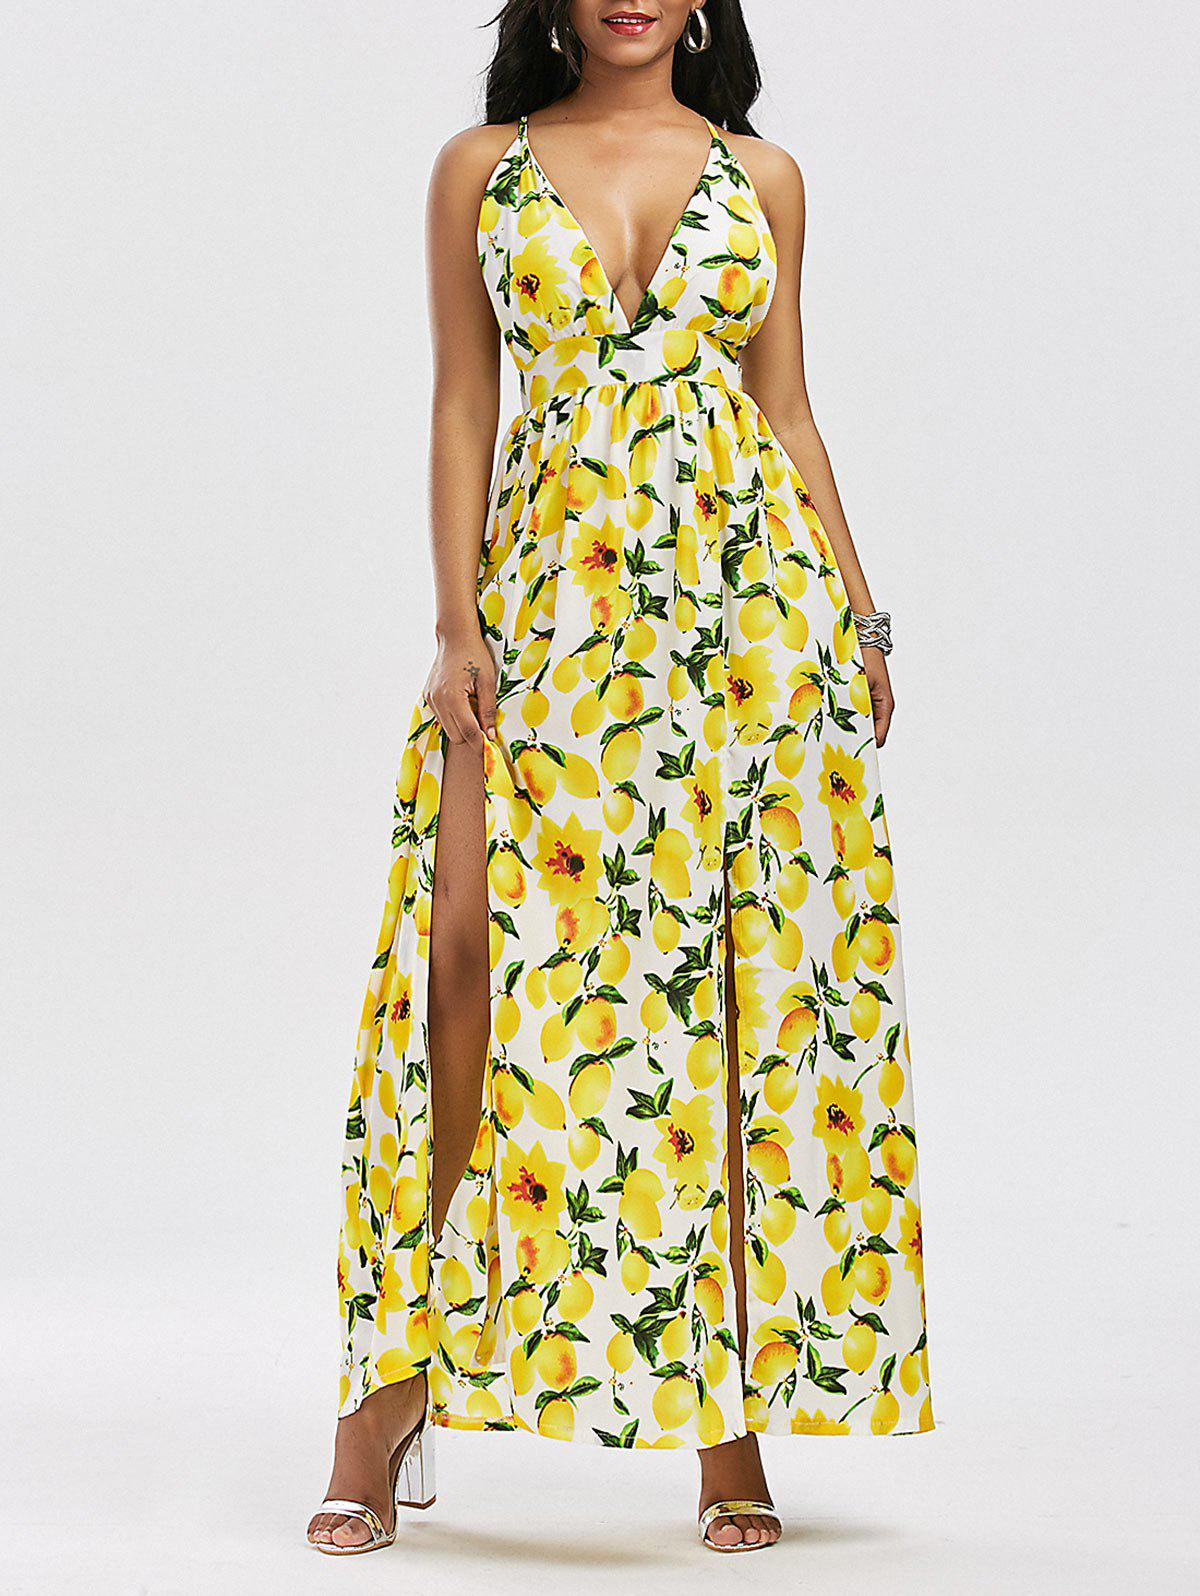 Lemon Print Split Backless Cami Maxi Dress - YELLOW S